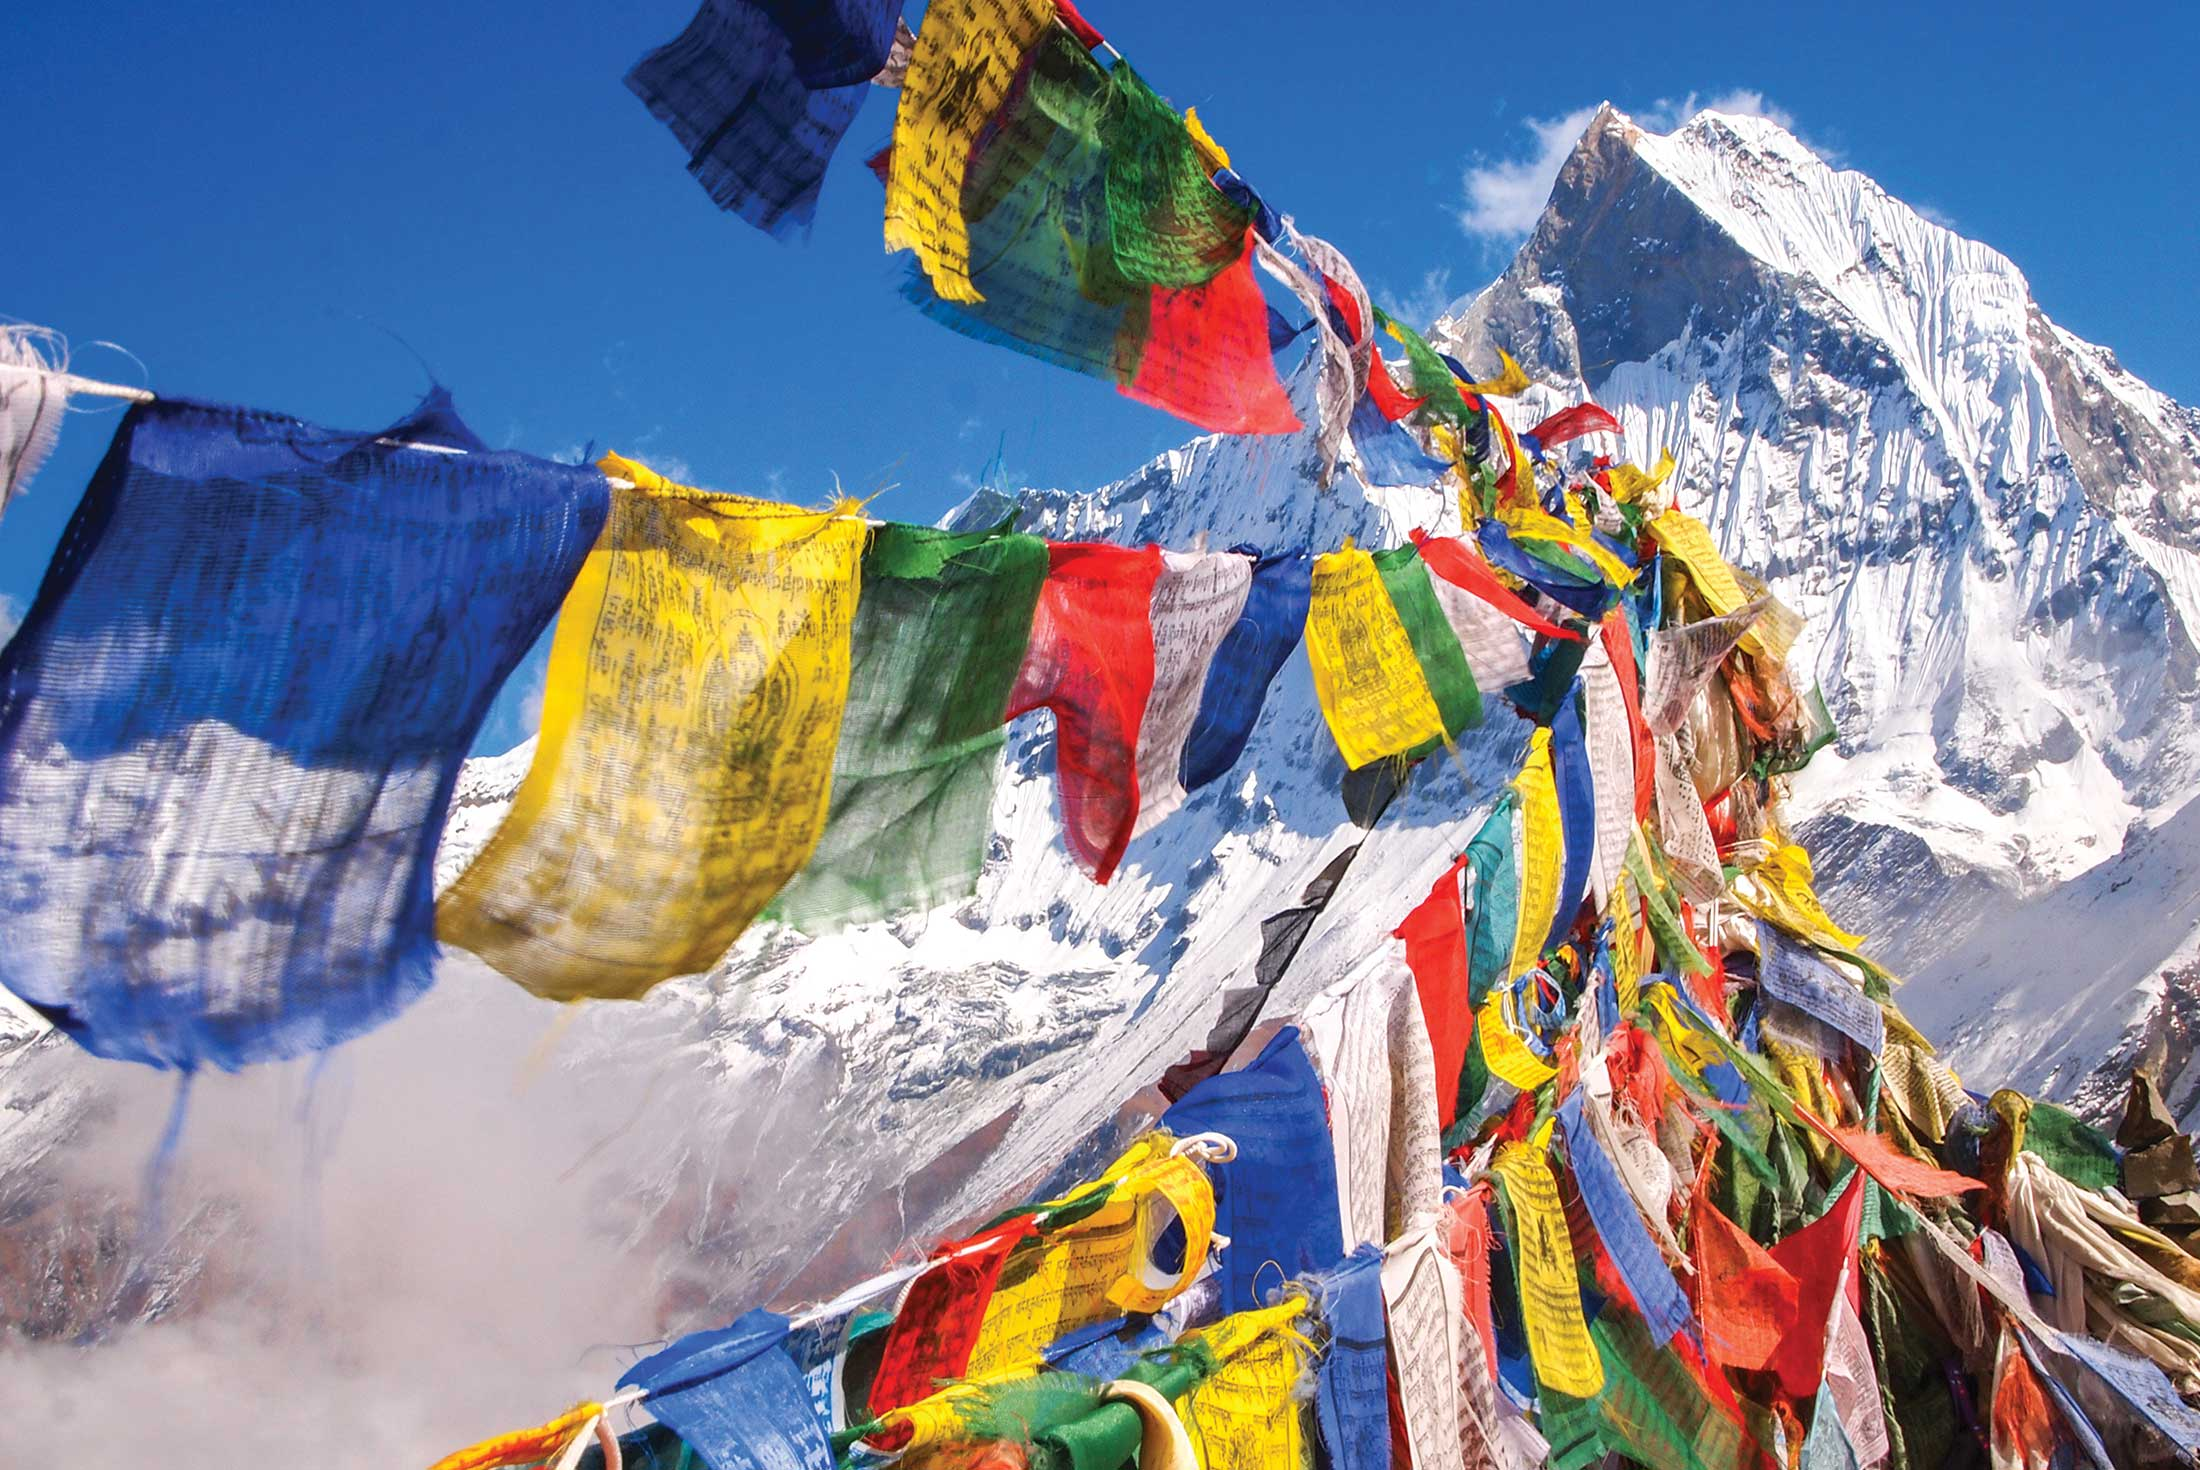 Real Everest Base Camp 2